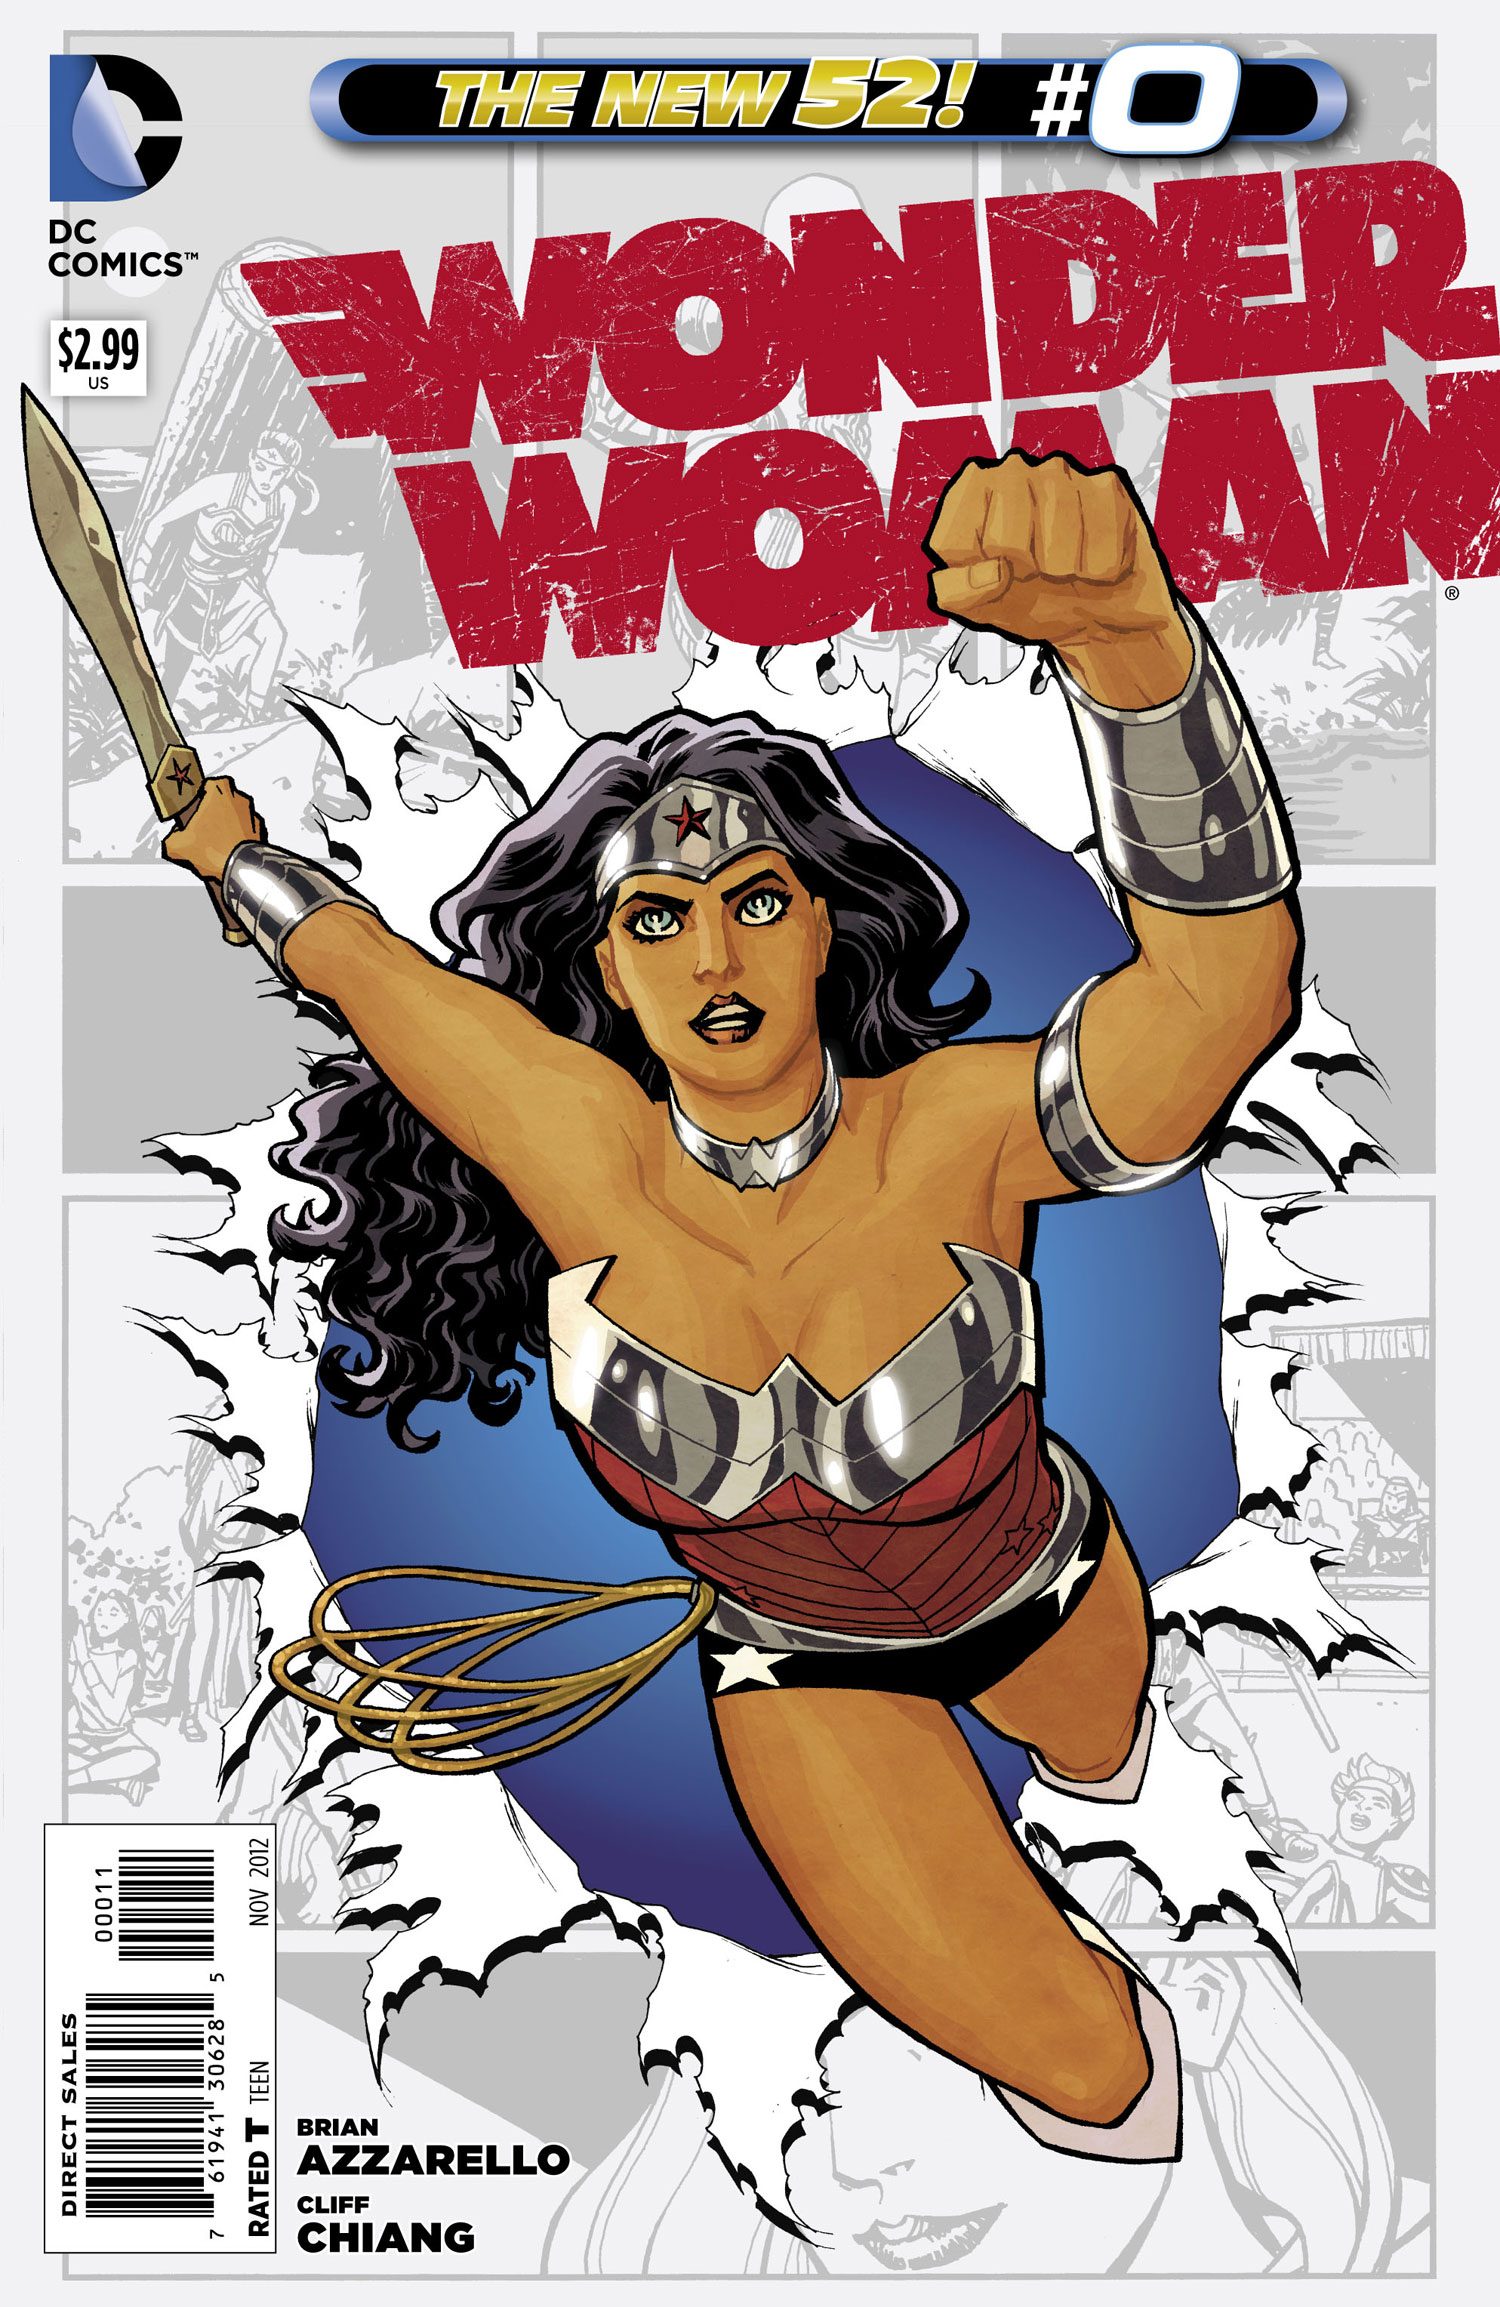 wonder woman 0 cover dp amateur sex, group hardcore sex thumbnail, lesbian masterbation stories, ...